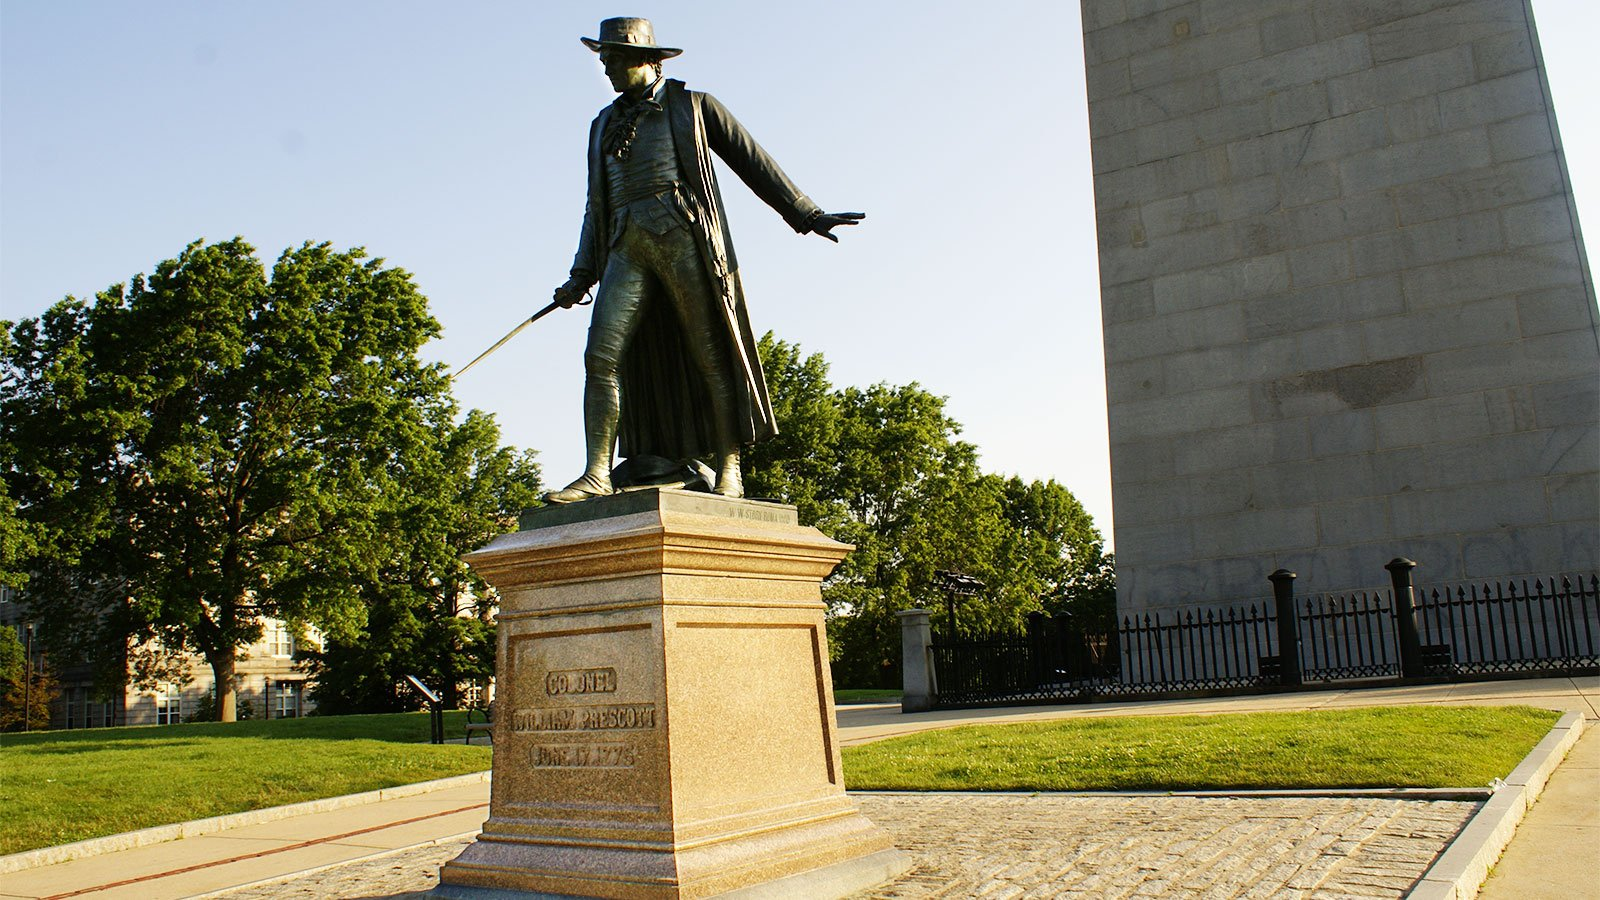 statue of Col. William Prescott